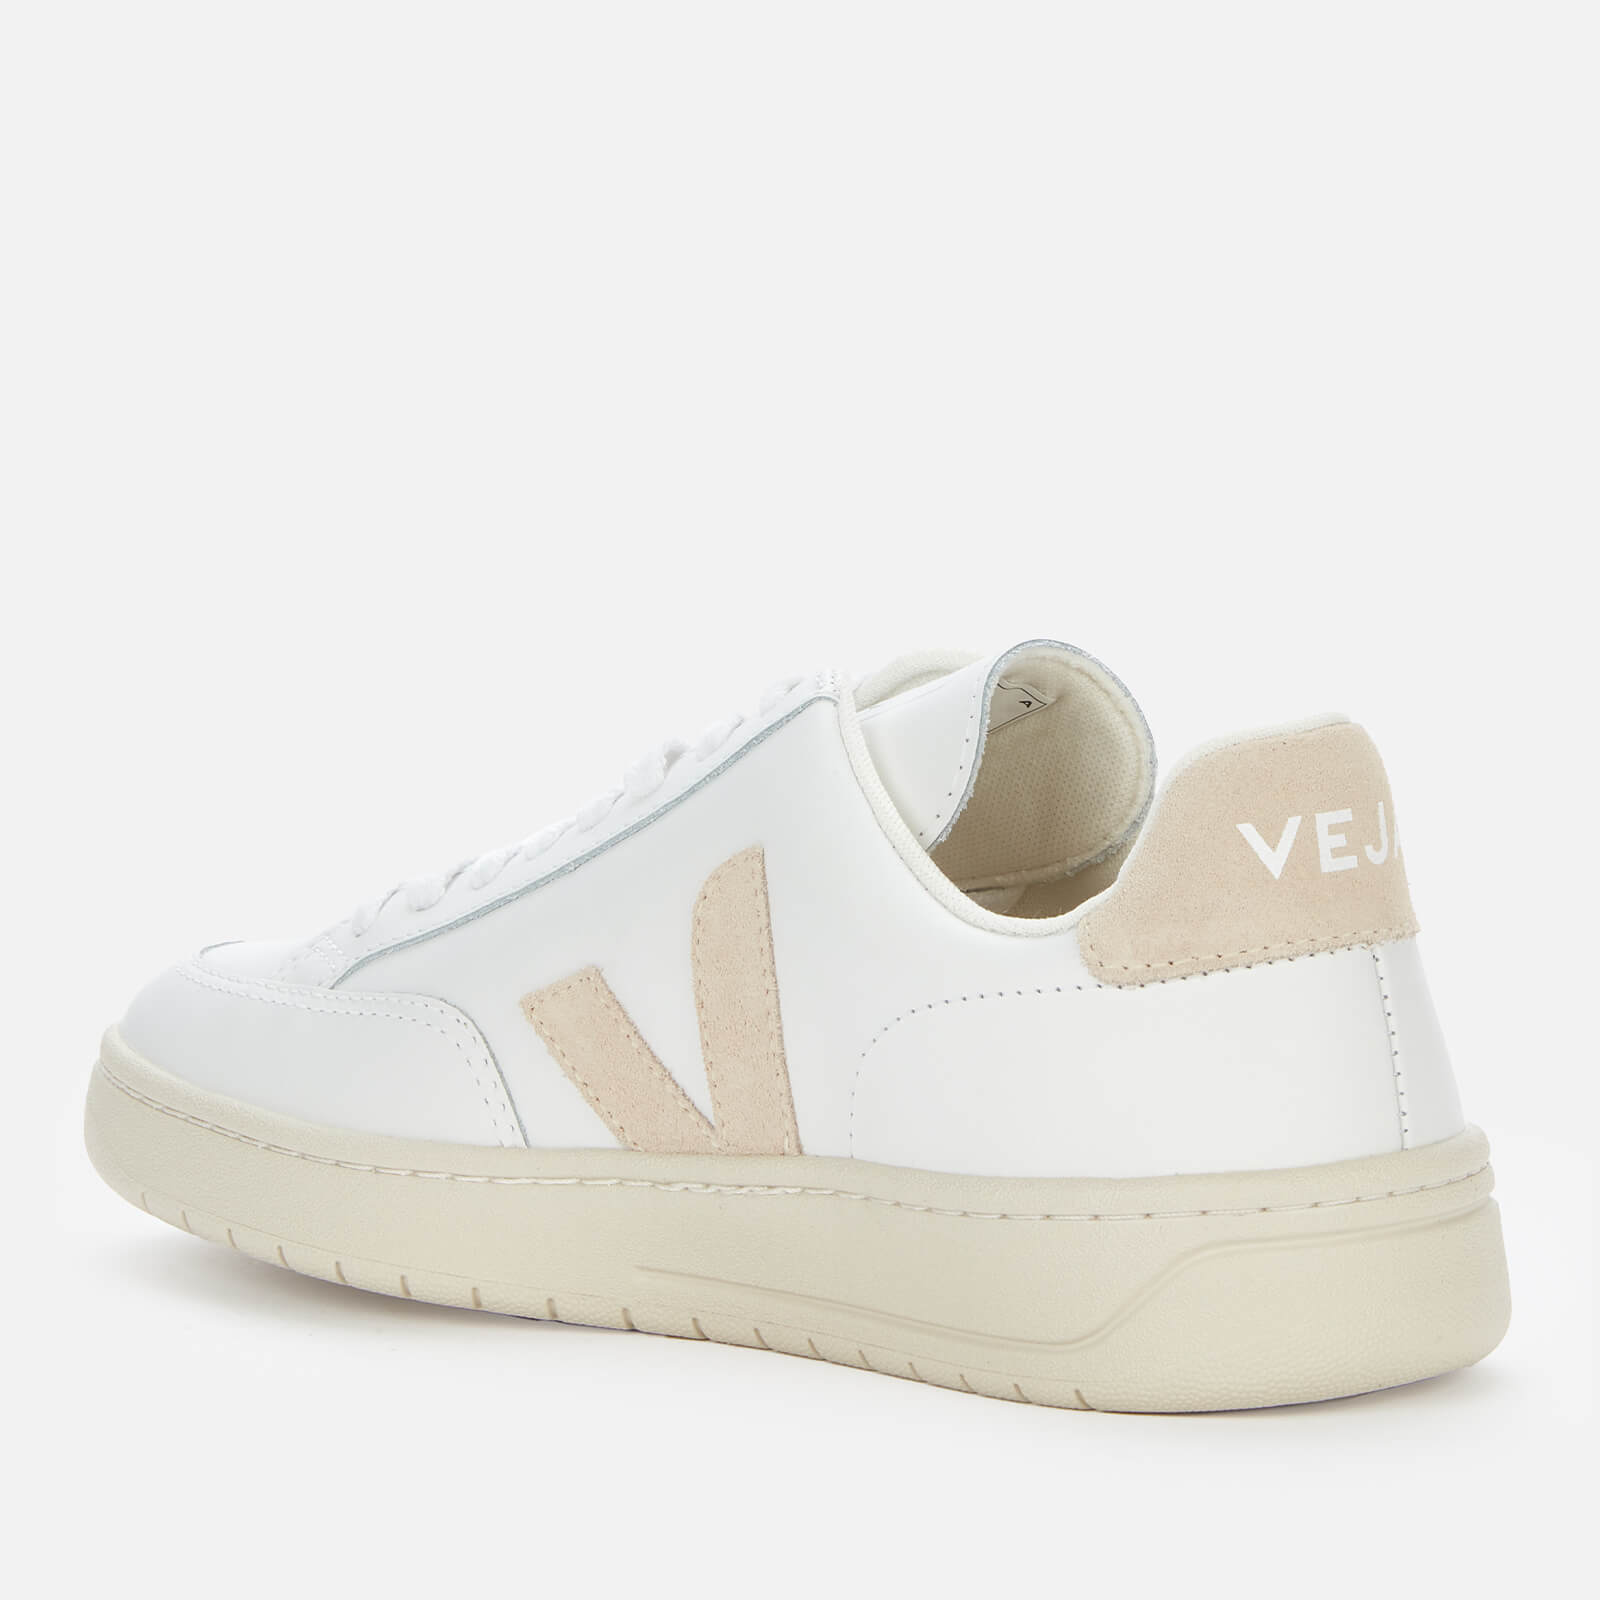 Veja Women's V-12 Leather Trainers - Extra White/Sable